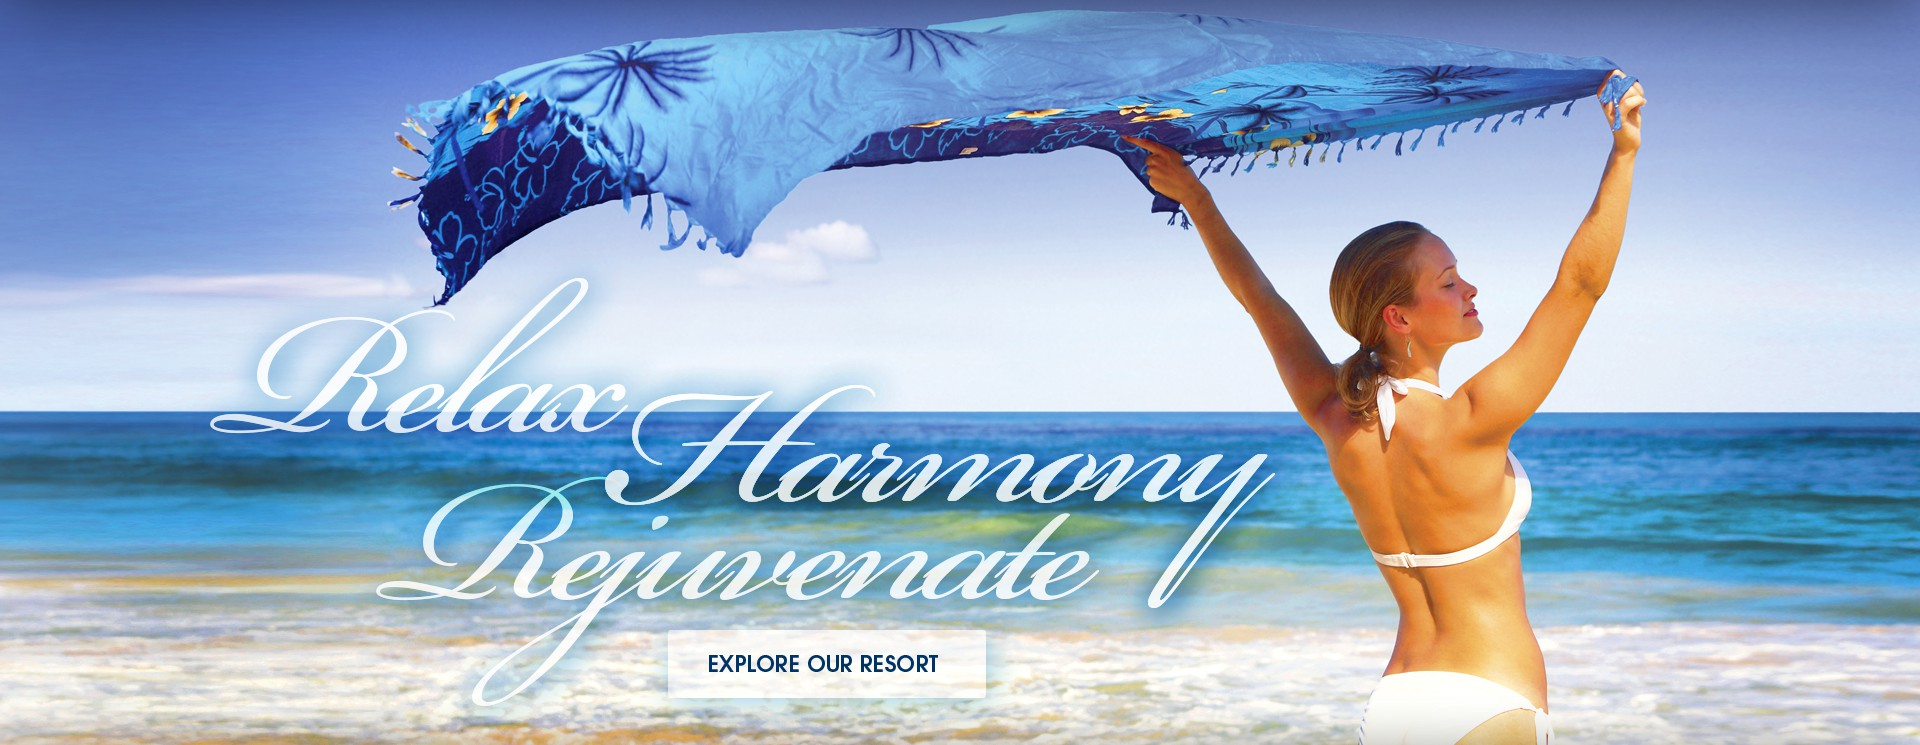 Relax, Harmony, Rejuvenate on the beach